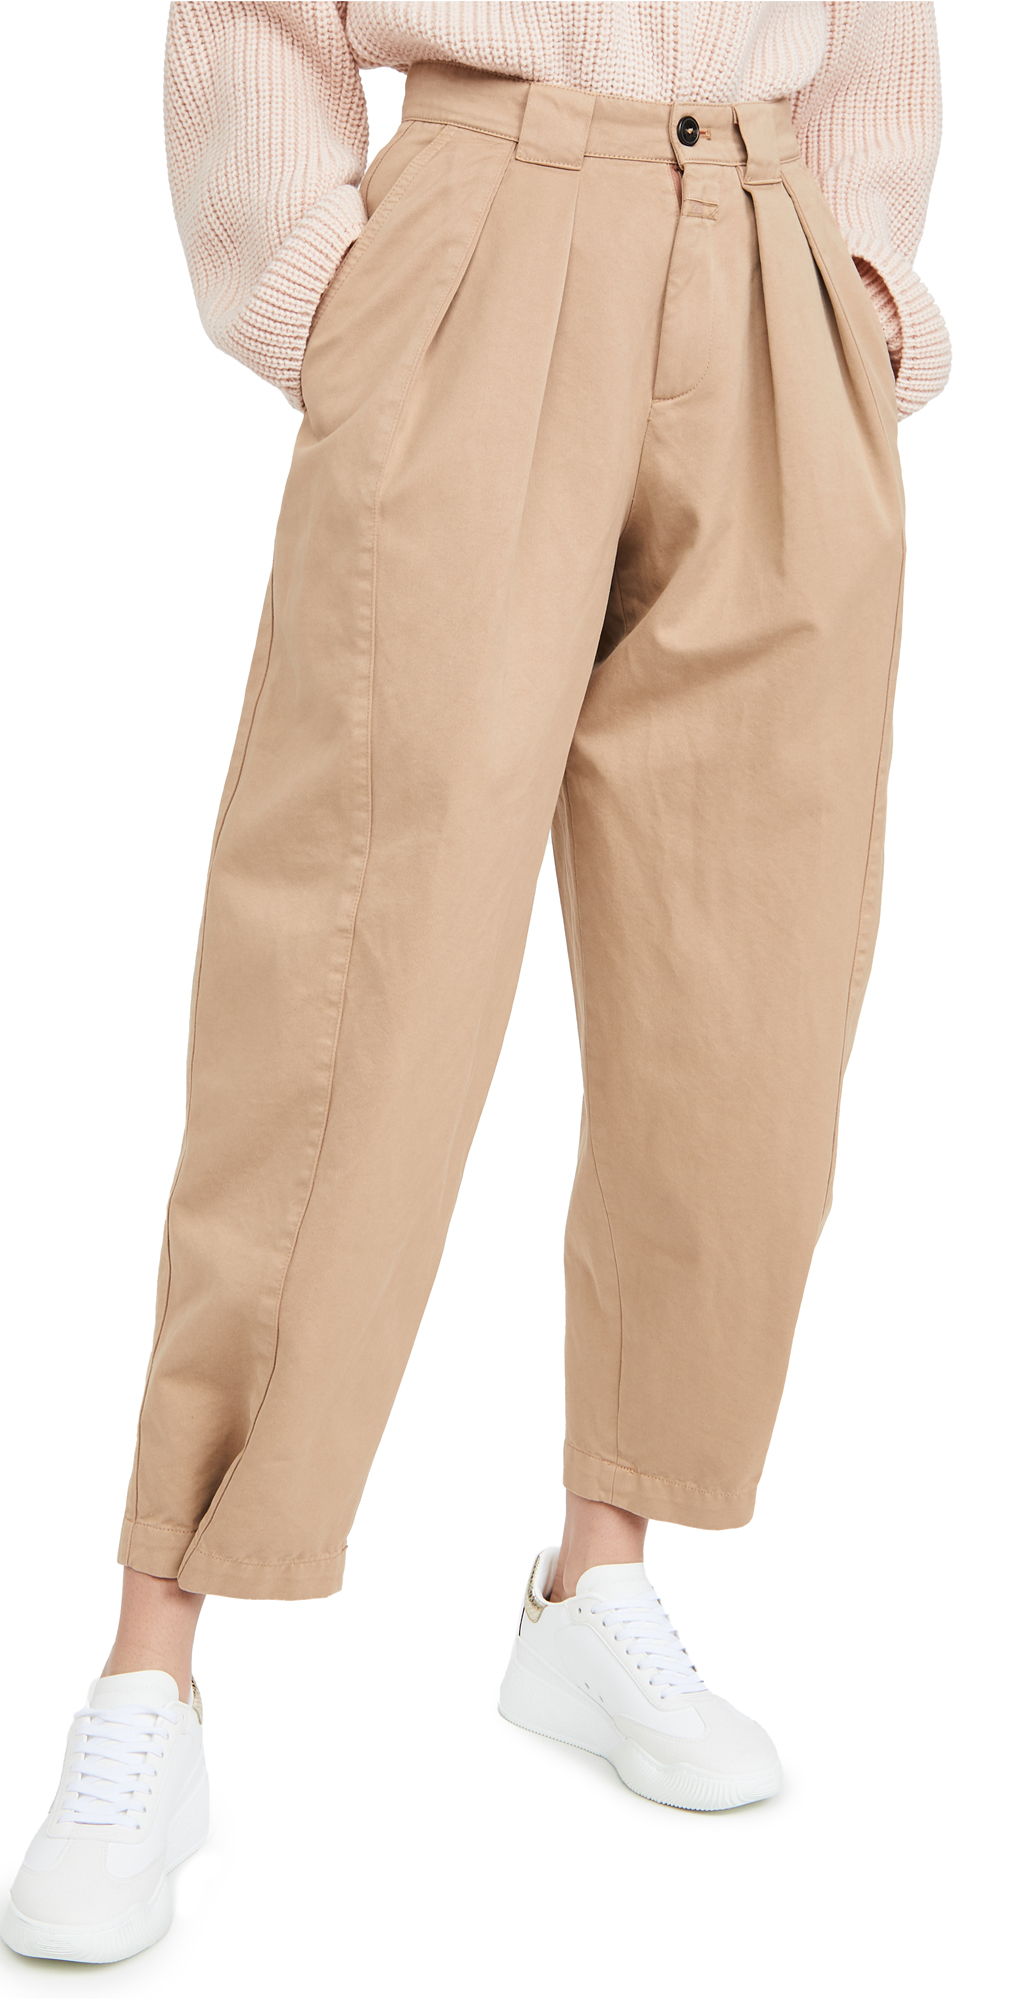 Closed Ivo Pants